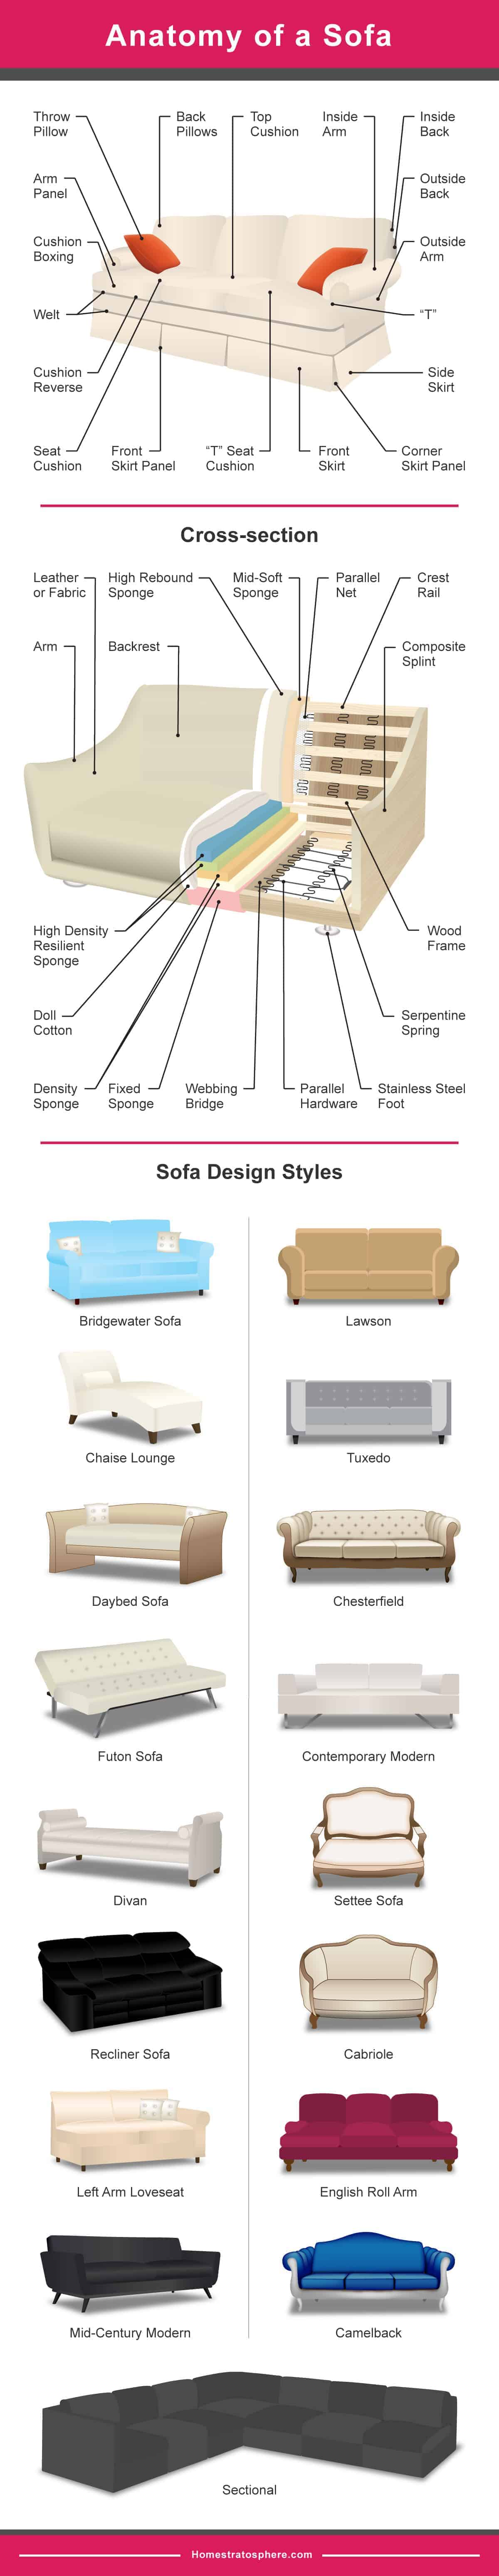 Diagram setting out the different types of sofas and anatomy of a sofa